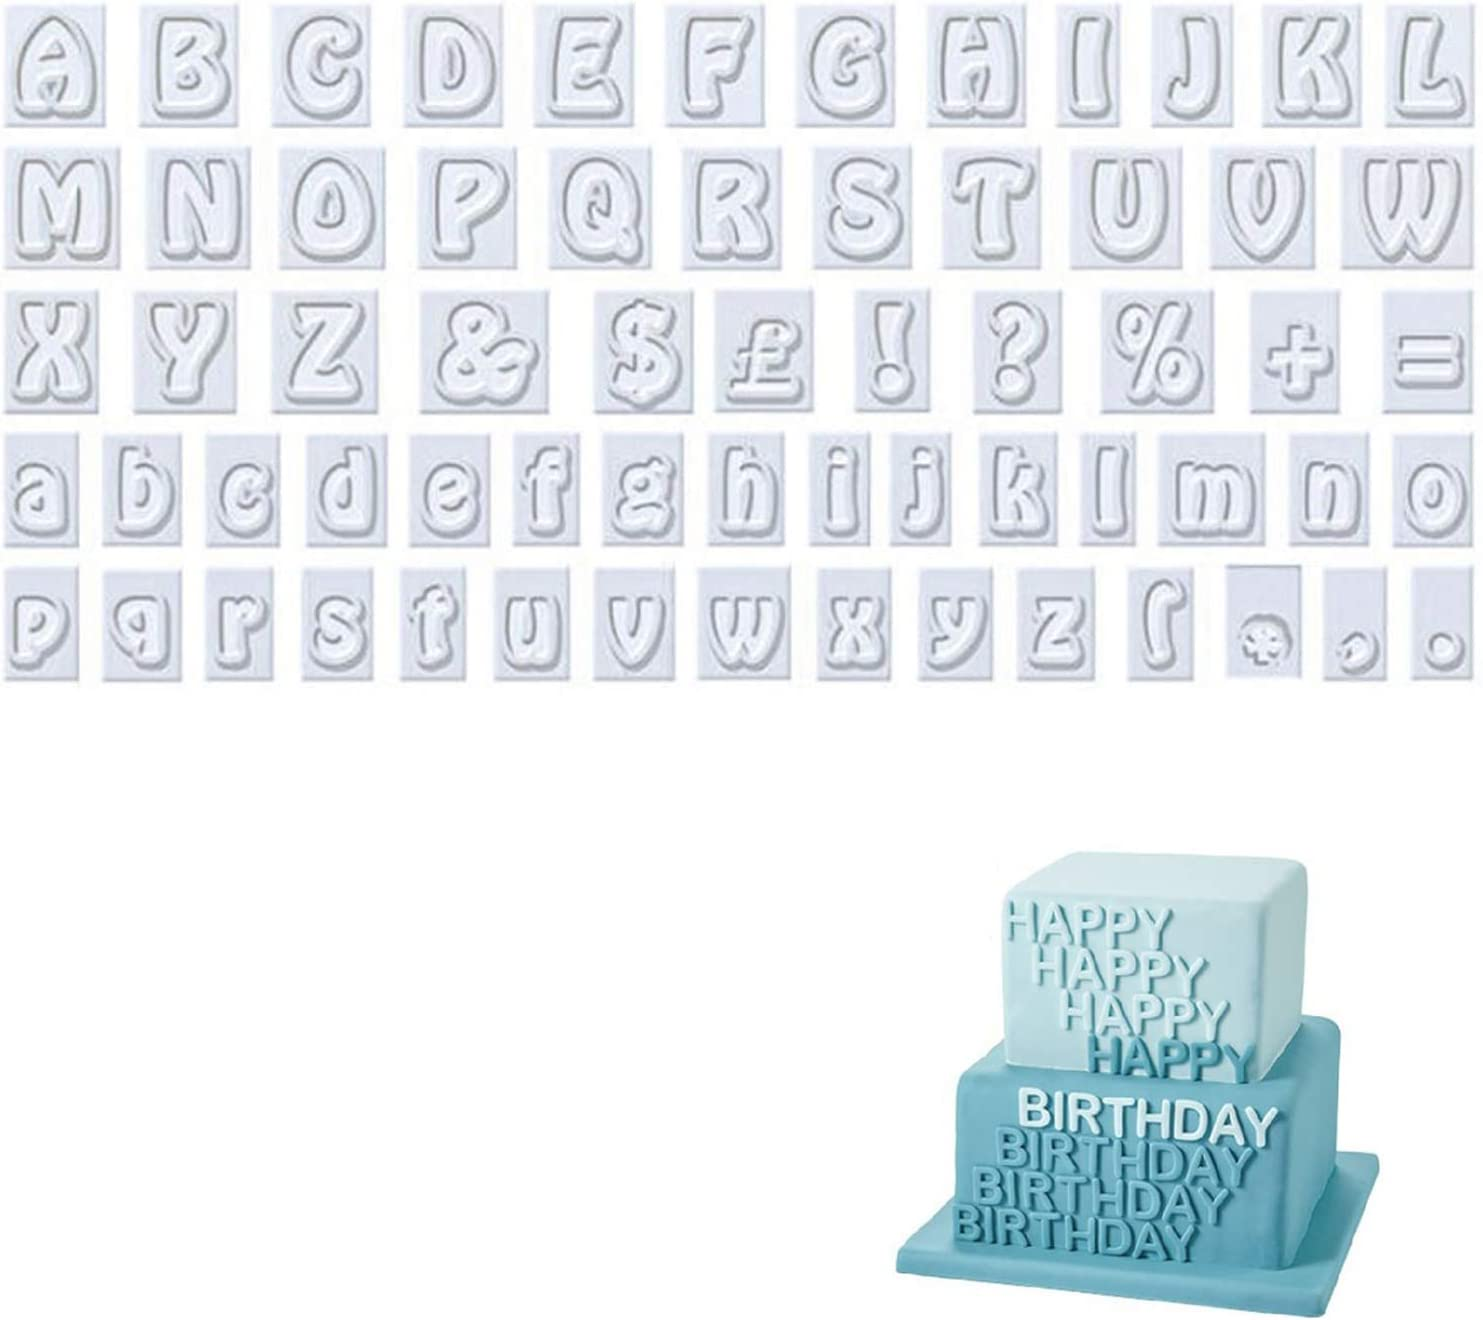 YASUOA 64 Pieces Alphabet Cookie Cutter Set Plastic Mini Fondant Cutters Mold Upper and Lower Case Characters Art Deco Number Letter Stamps for Cake Decorating Bakers Parties Baking Home DIY Birthday